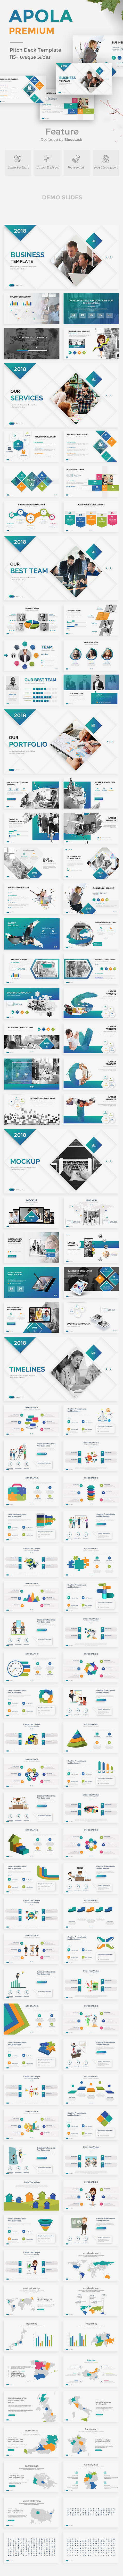 Apola Business Powerpoint Template